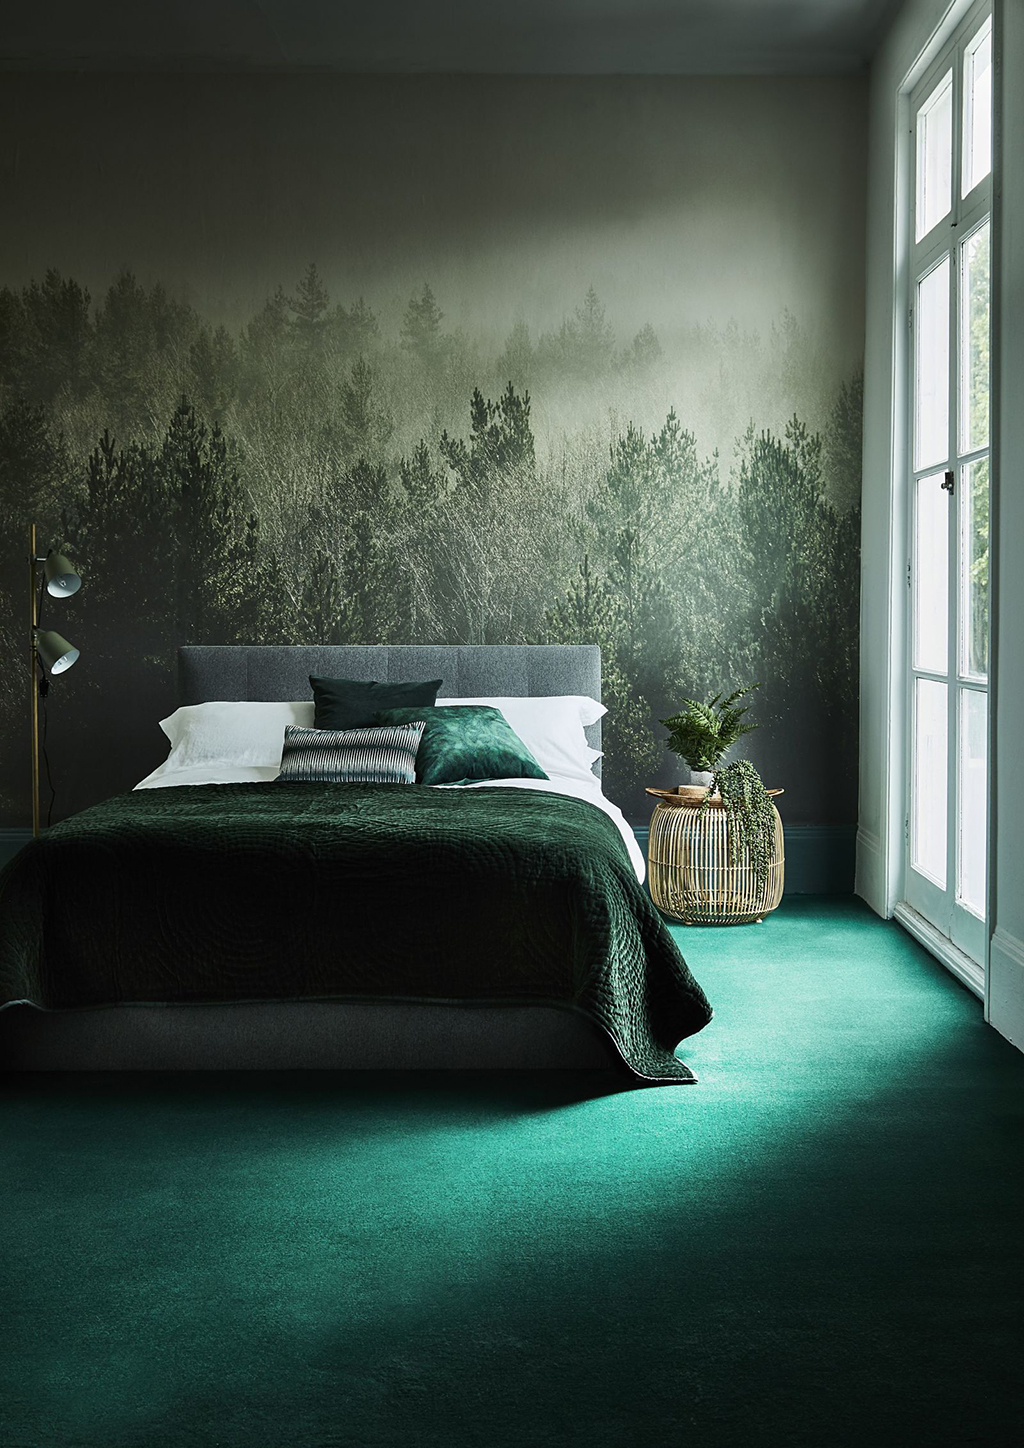 Interior Spaces Perfect for Spring - This room emits a tranquil, cozy vibe with its dark green hues. We could rest our heads here any day.